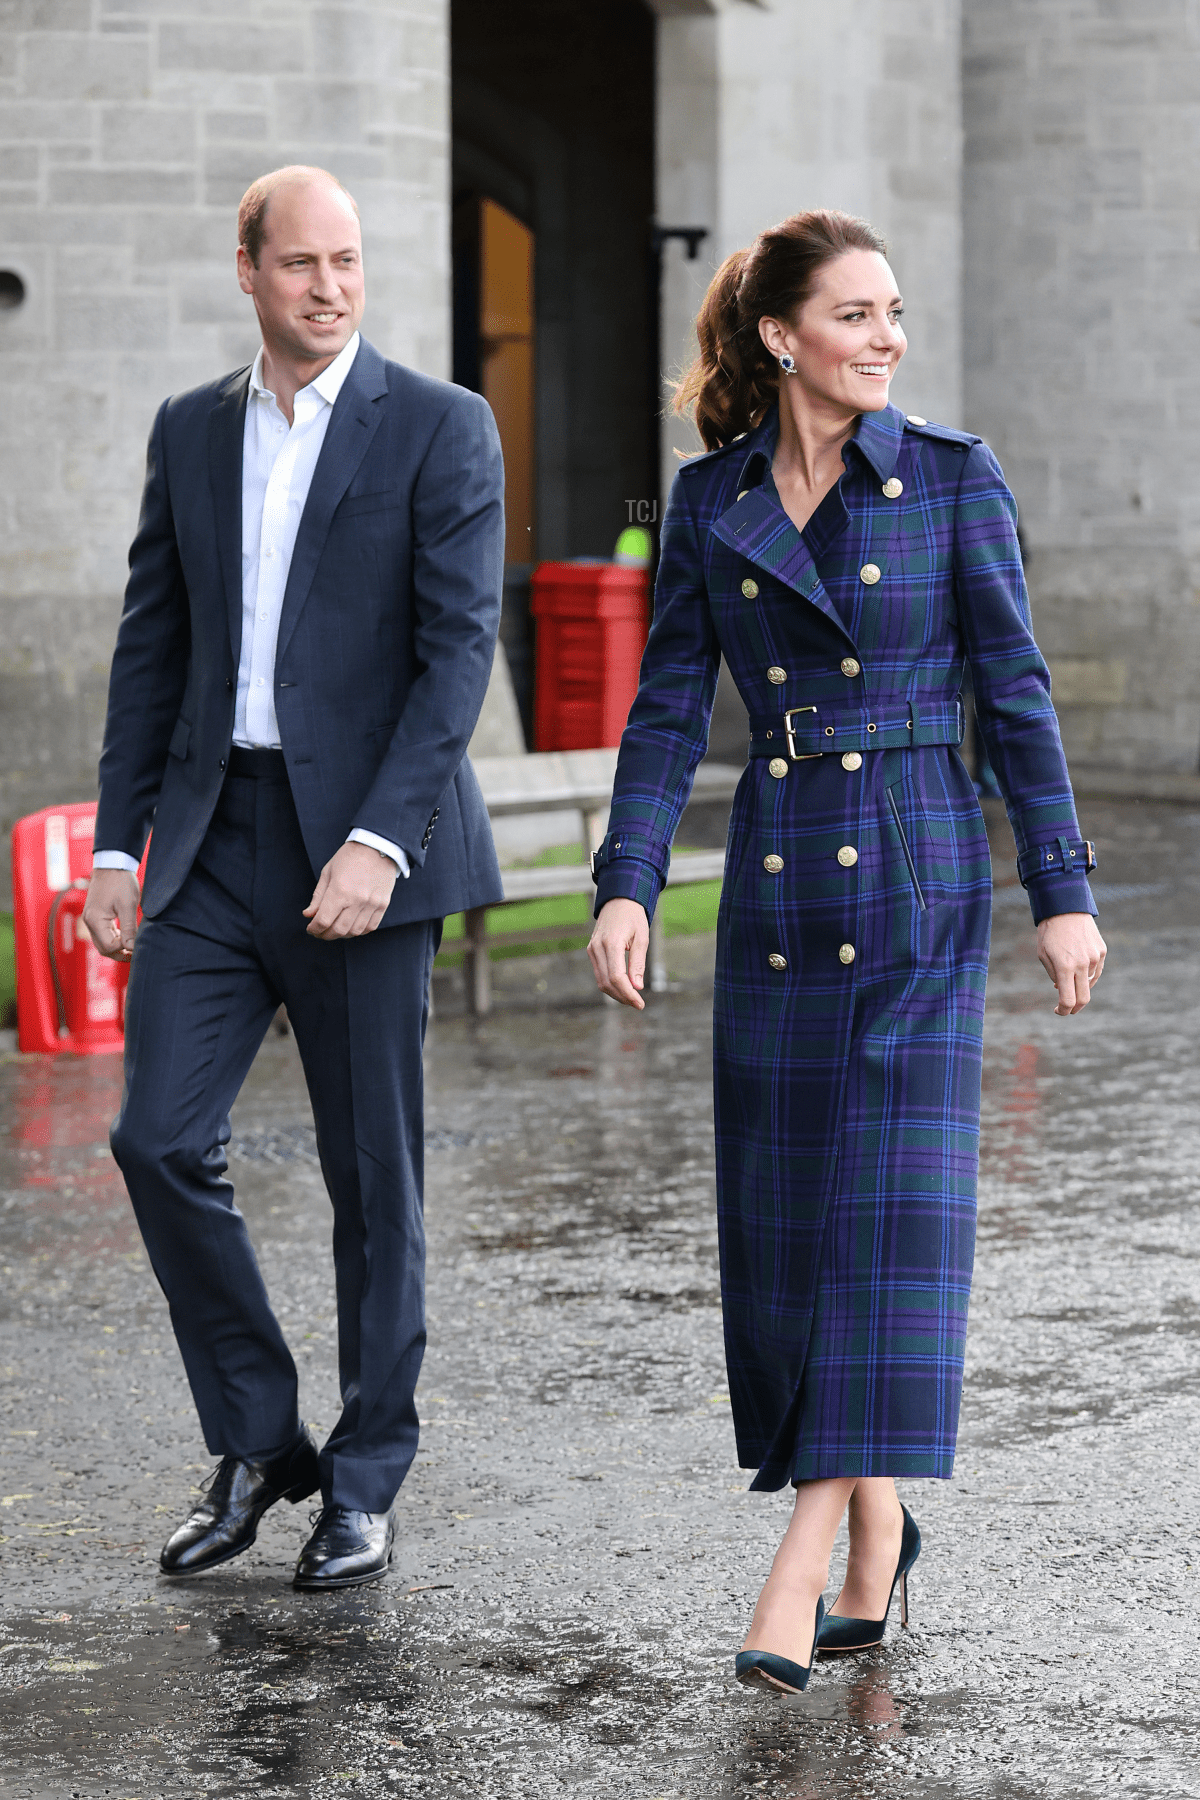 Prince William, Duke of Cambridge and Catherine, Duchess of Cambridge arrive to host NHS Charities Together and NHS staff at a unique drive-in cinema to watch a special screening of Disney's Cruella at the Palace of Holyroodhouse on day six of their week-long visit to Scotland on May 26, 2021